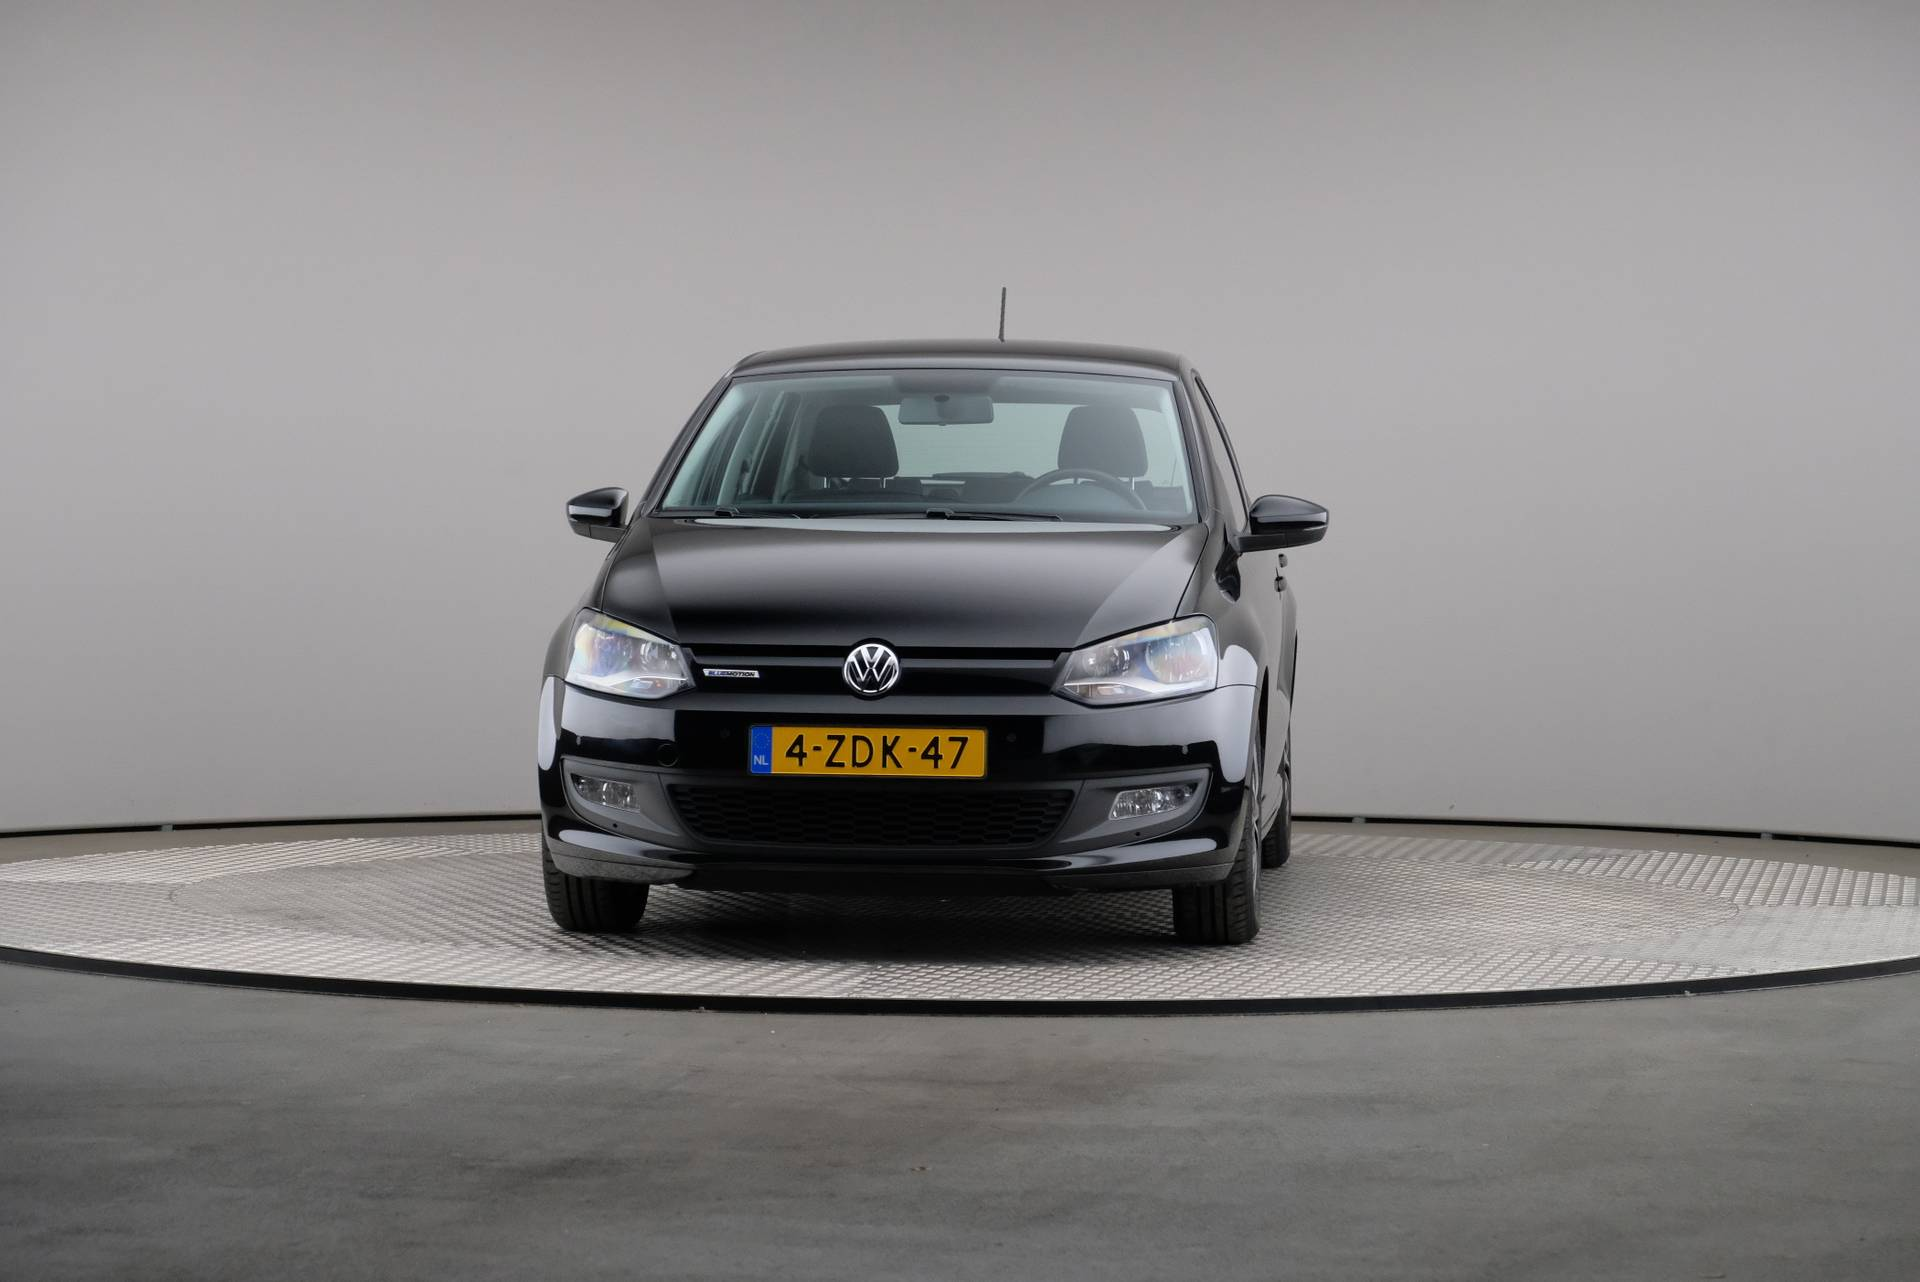 Volkswagen Polo 1.4 TDI BlueMotion Executive plus, Navigatie, 360-image33